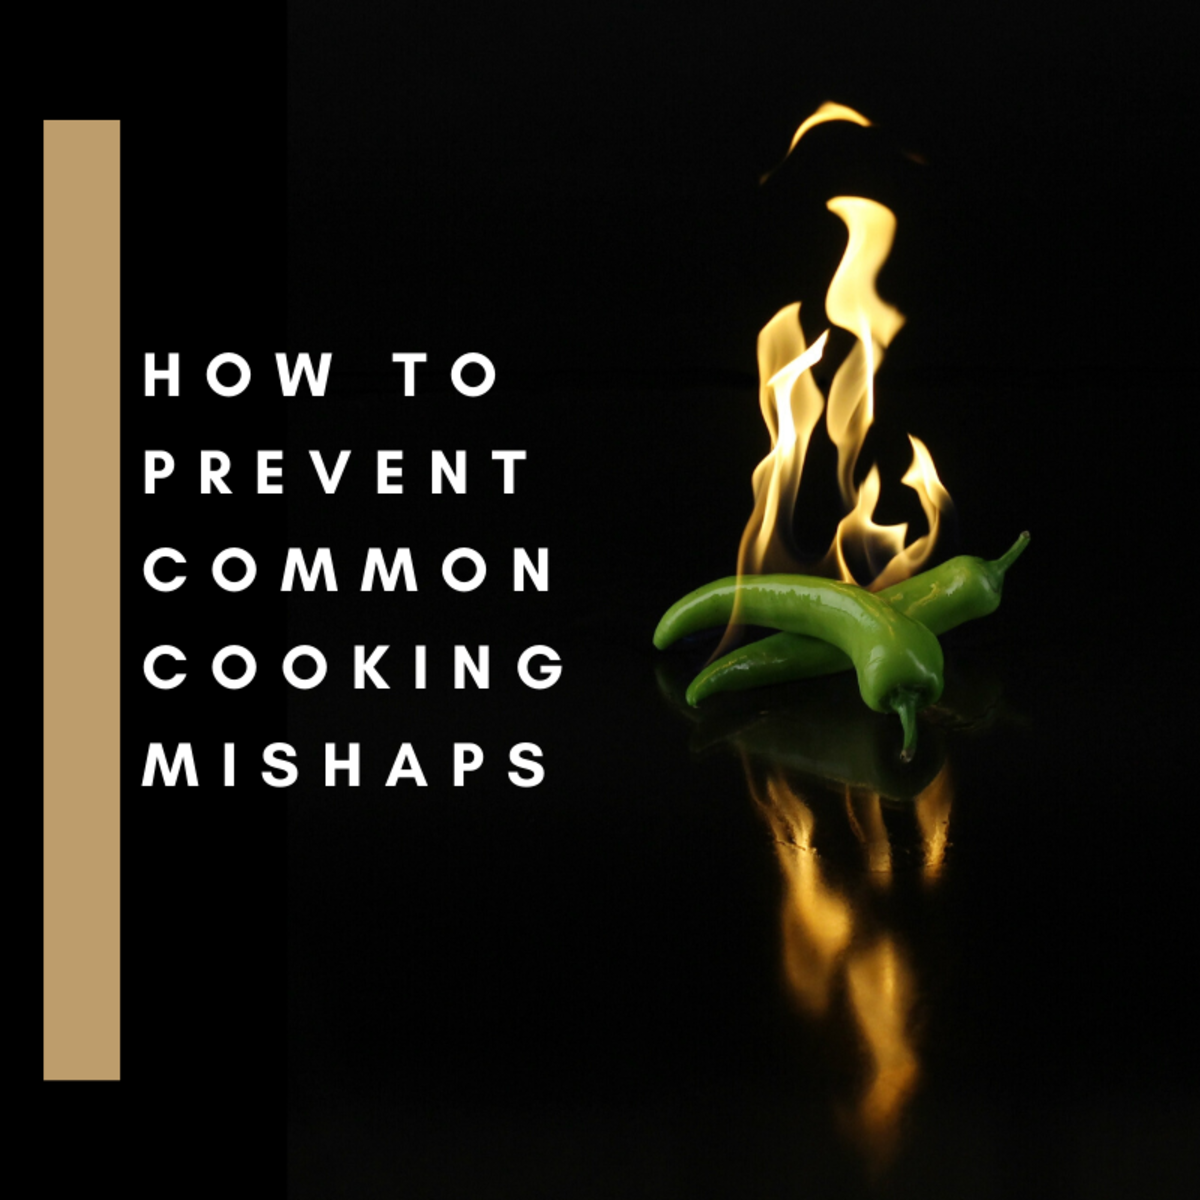 Common cooking mistakes are easier to prevent than you'd think. Read on to learn more.